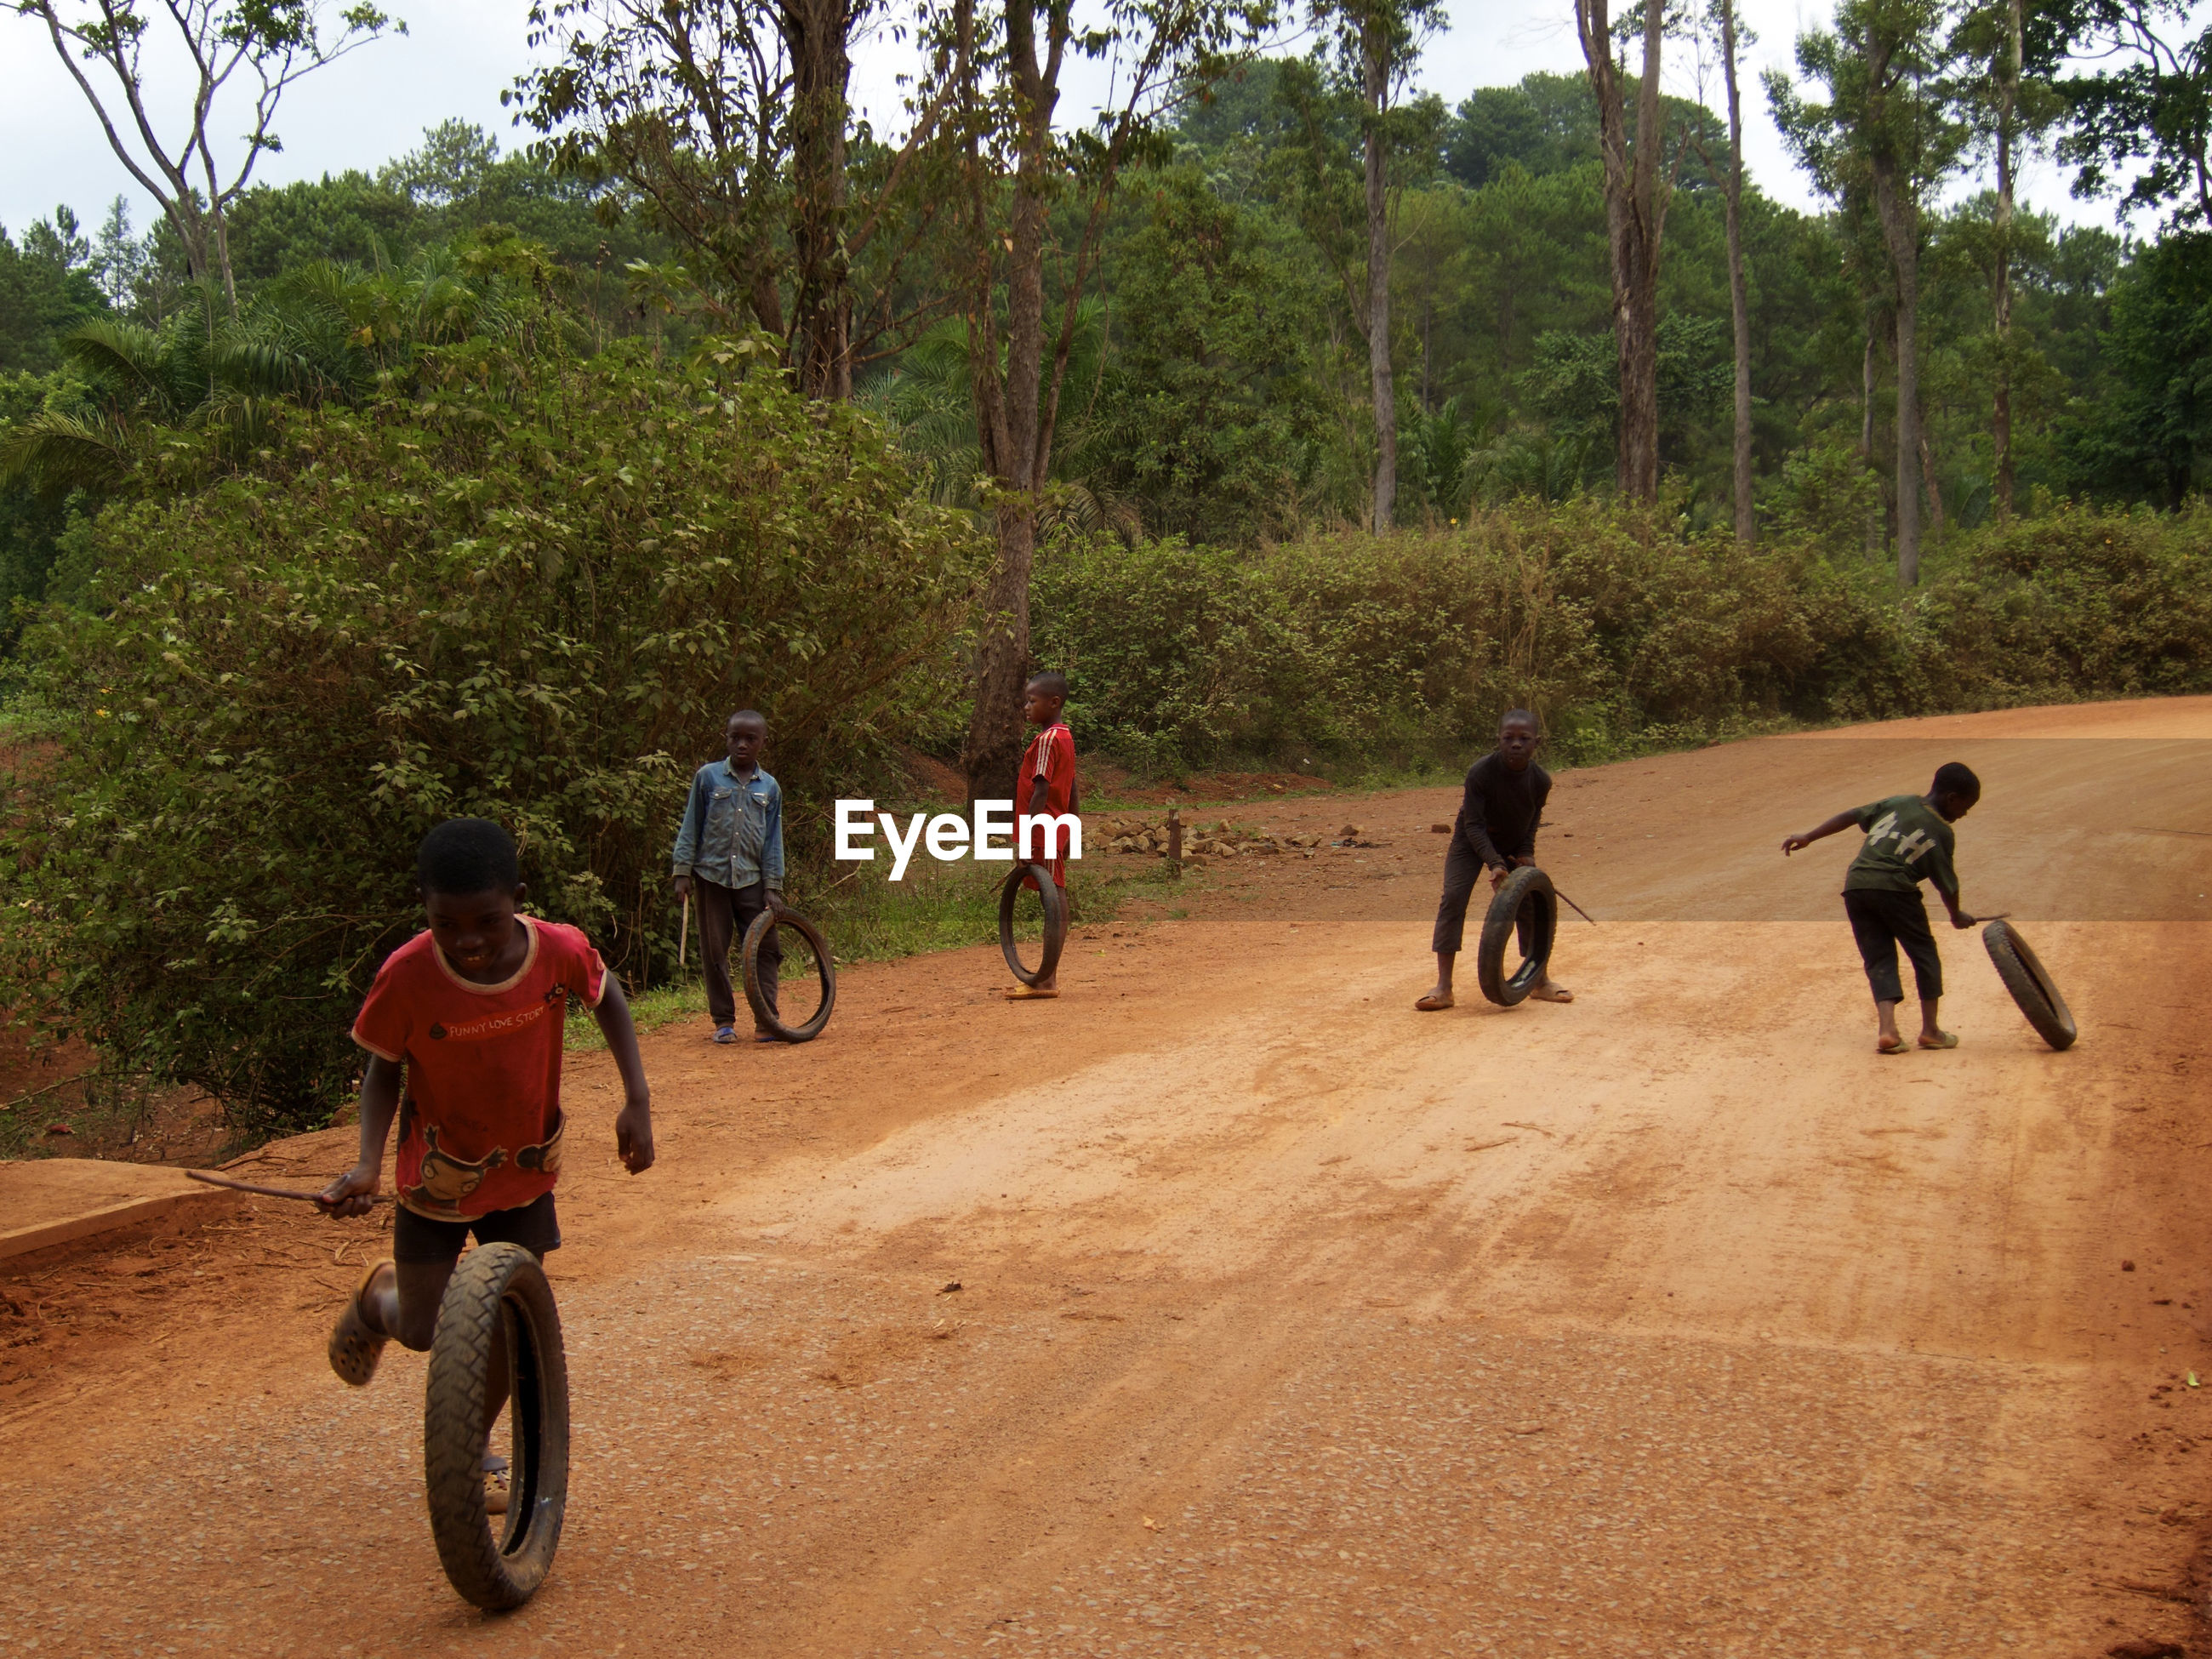 REAR VIEW OF PEOPLE PLAYING ON THE ROAD